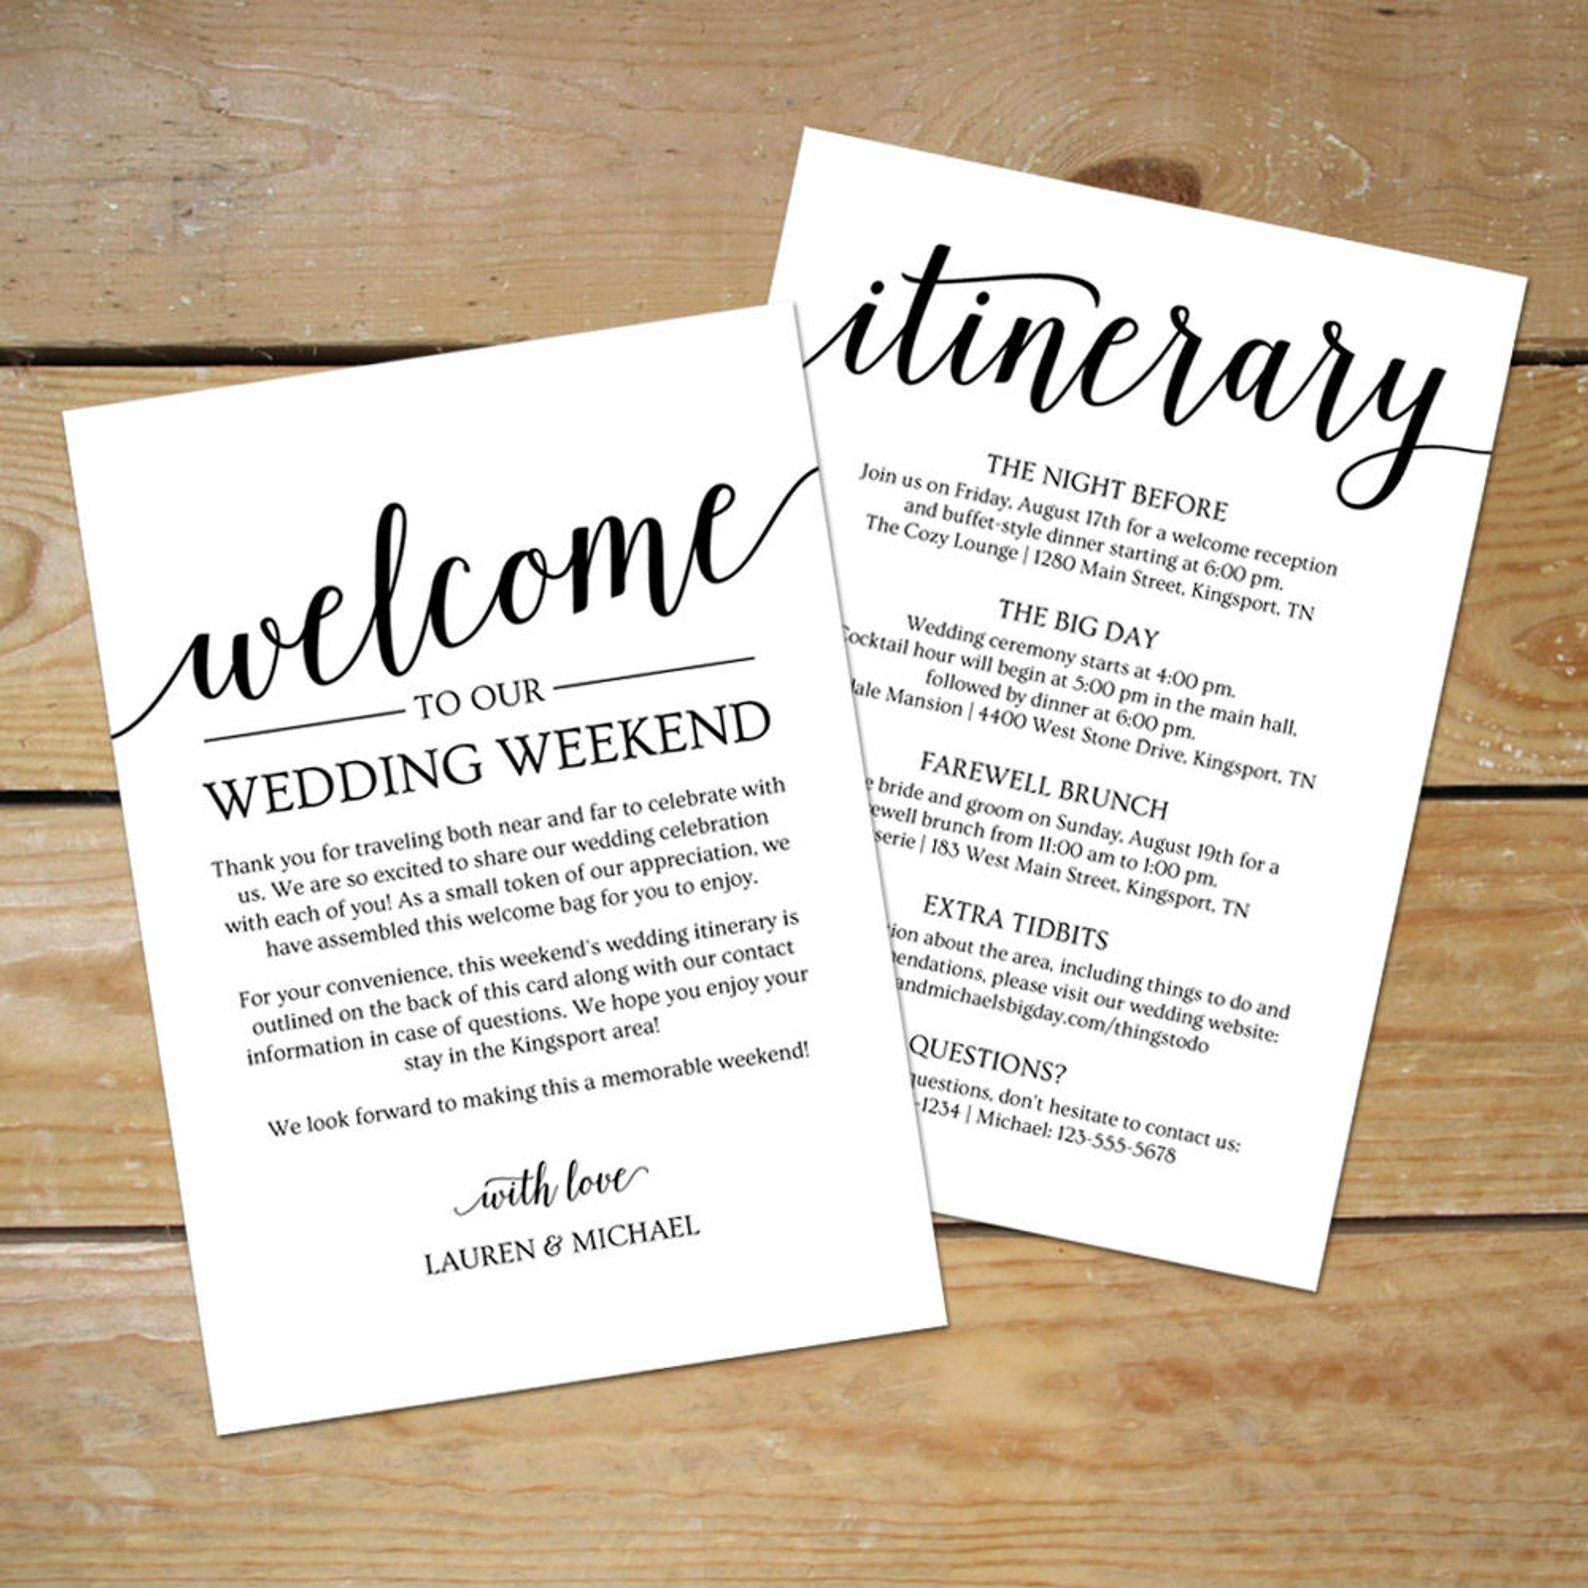 003 Shocking Destination Wedding Welcome Letter And Itinerary Template Image Full